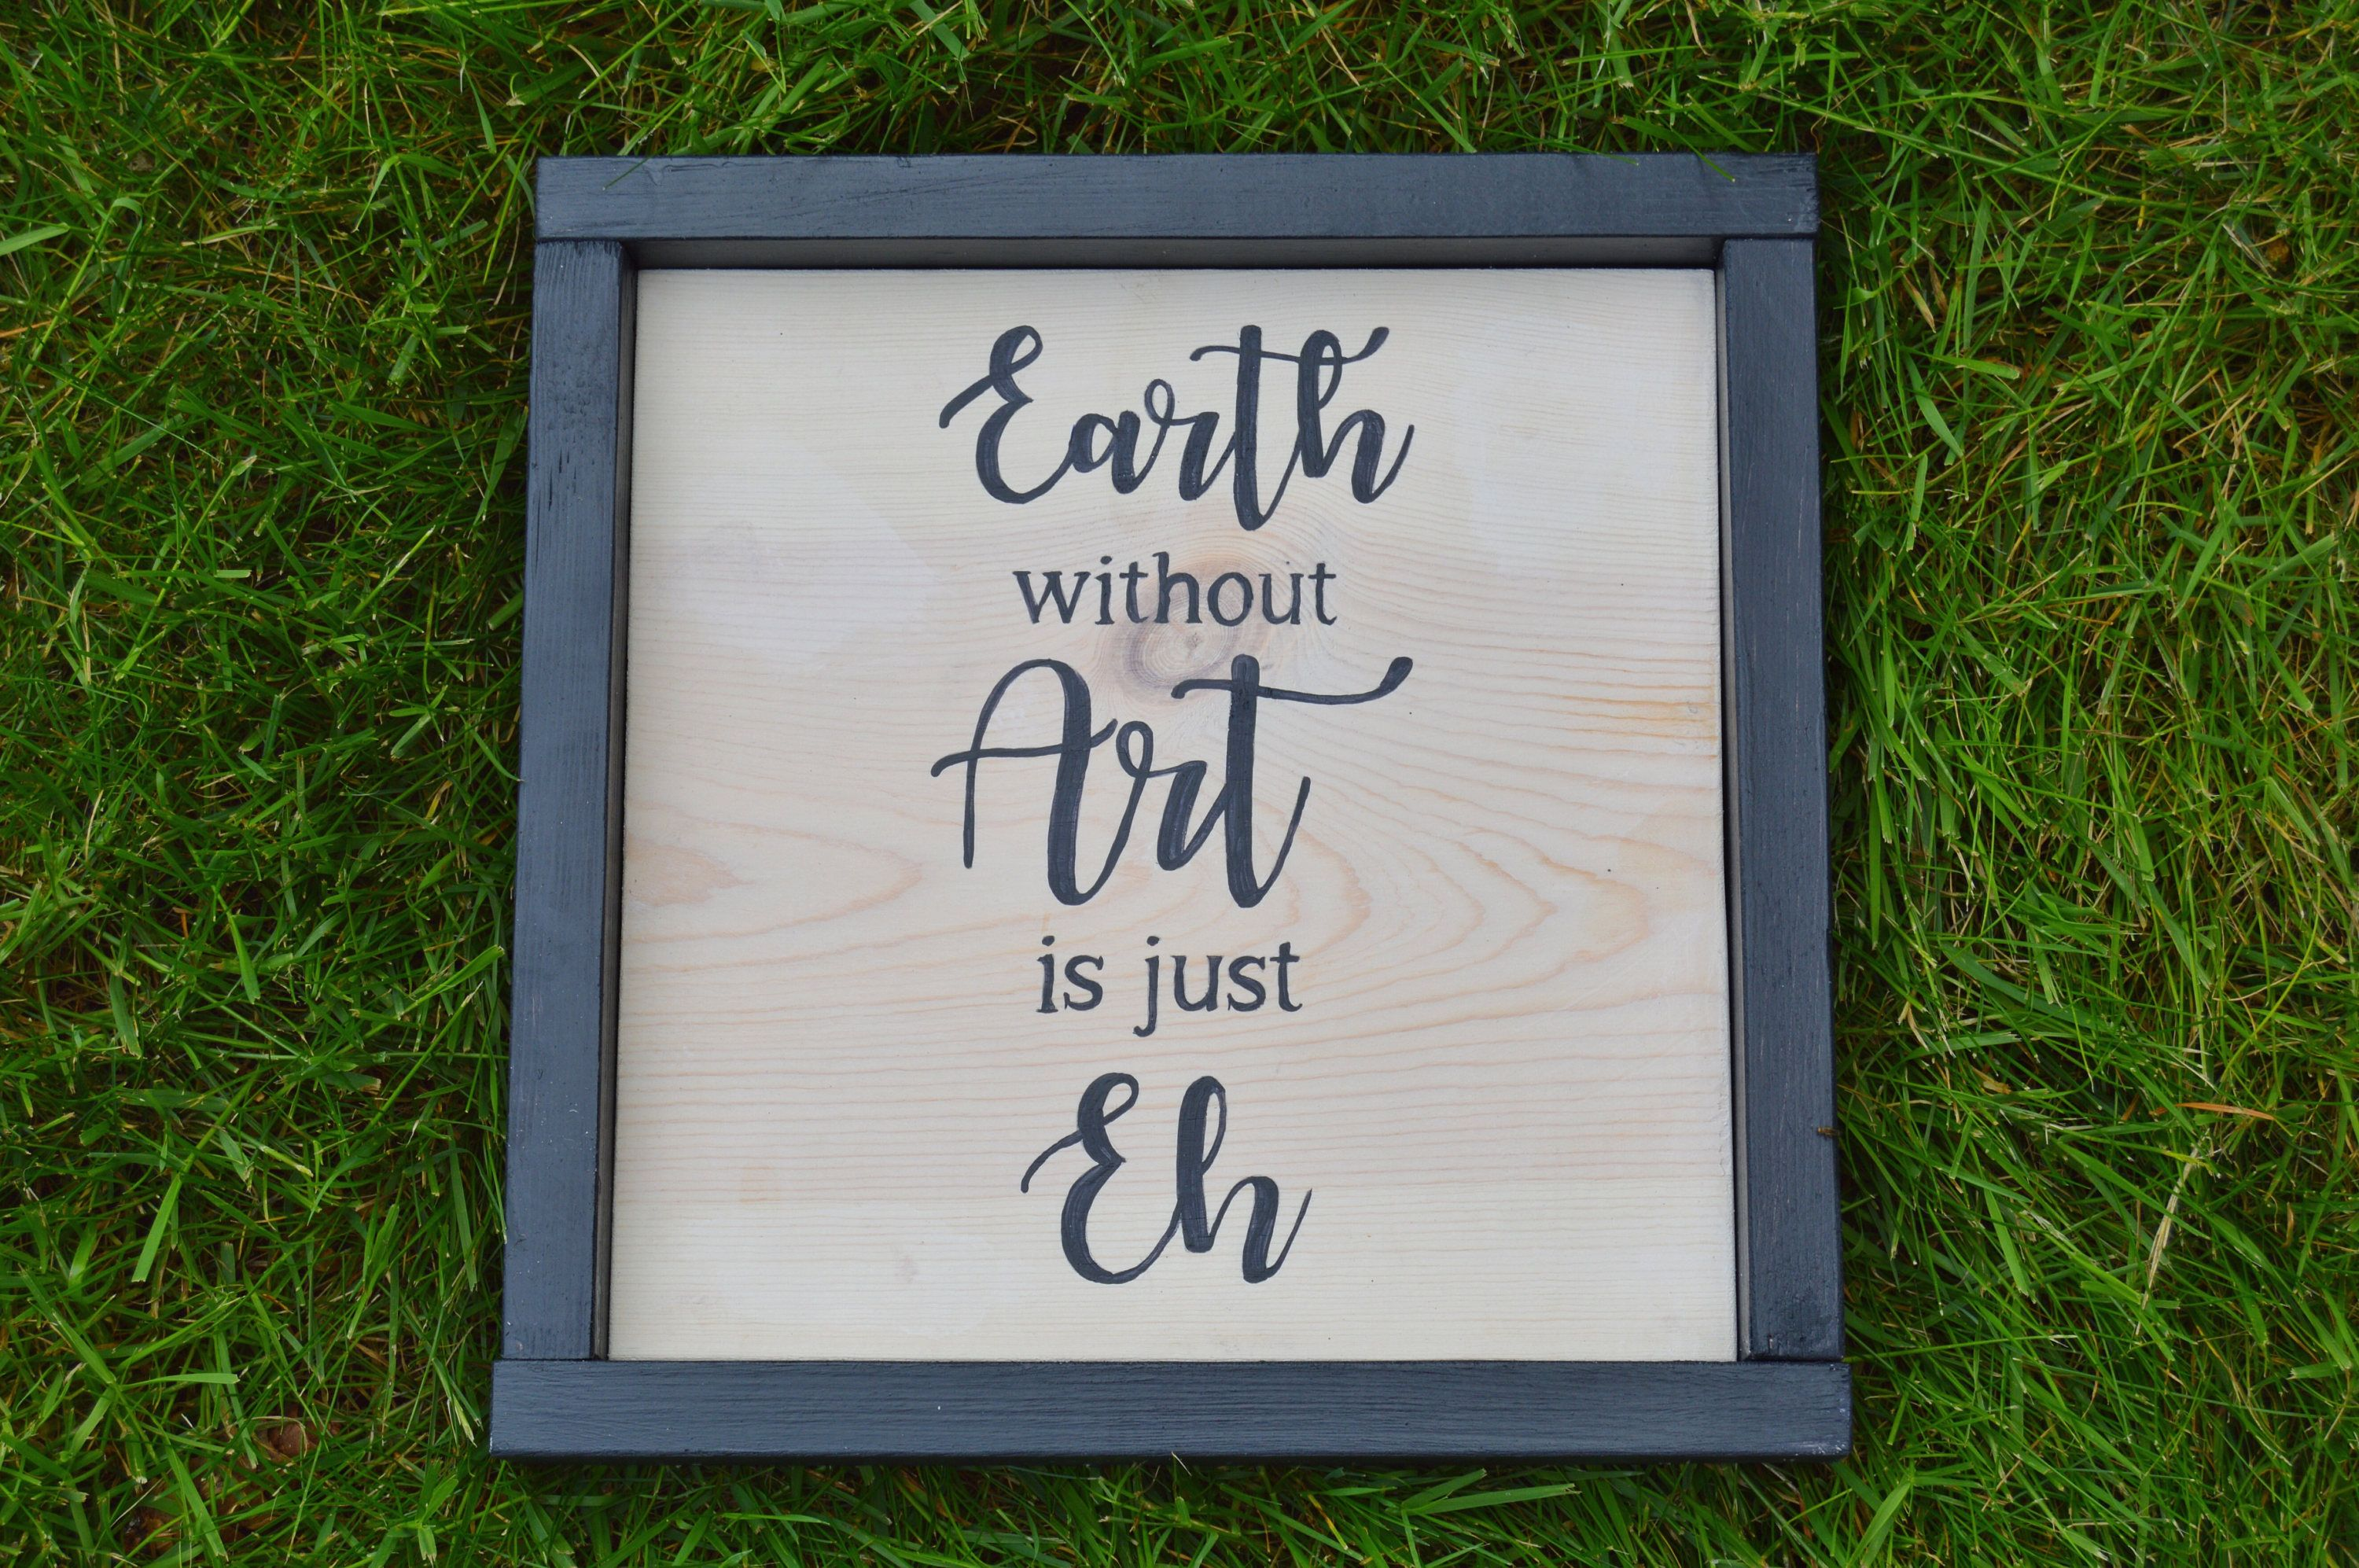 earth without art framed wood sign wood sign sayings wooden signs wood - Wooden Signs With Sayings